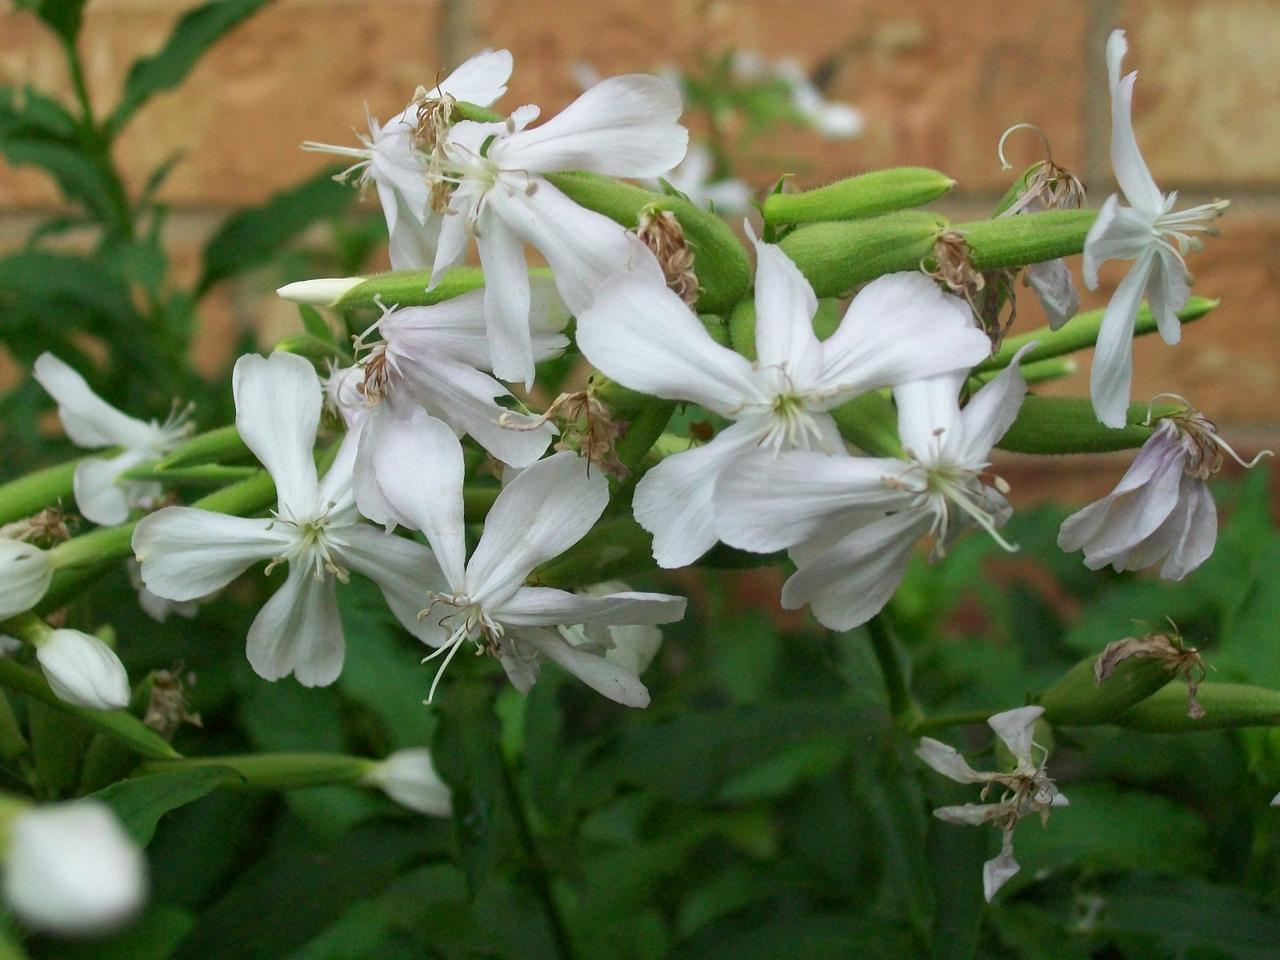 Soapwort also called bouncing Bet has white to pink flowers. If you cut back spent flower clusters the vigorous plant will bloom again and again until the first freeze